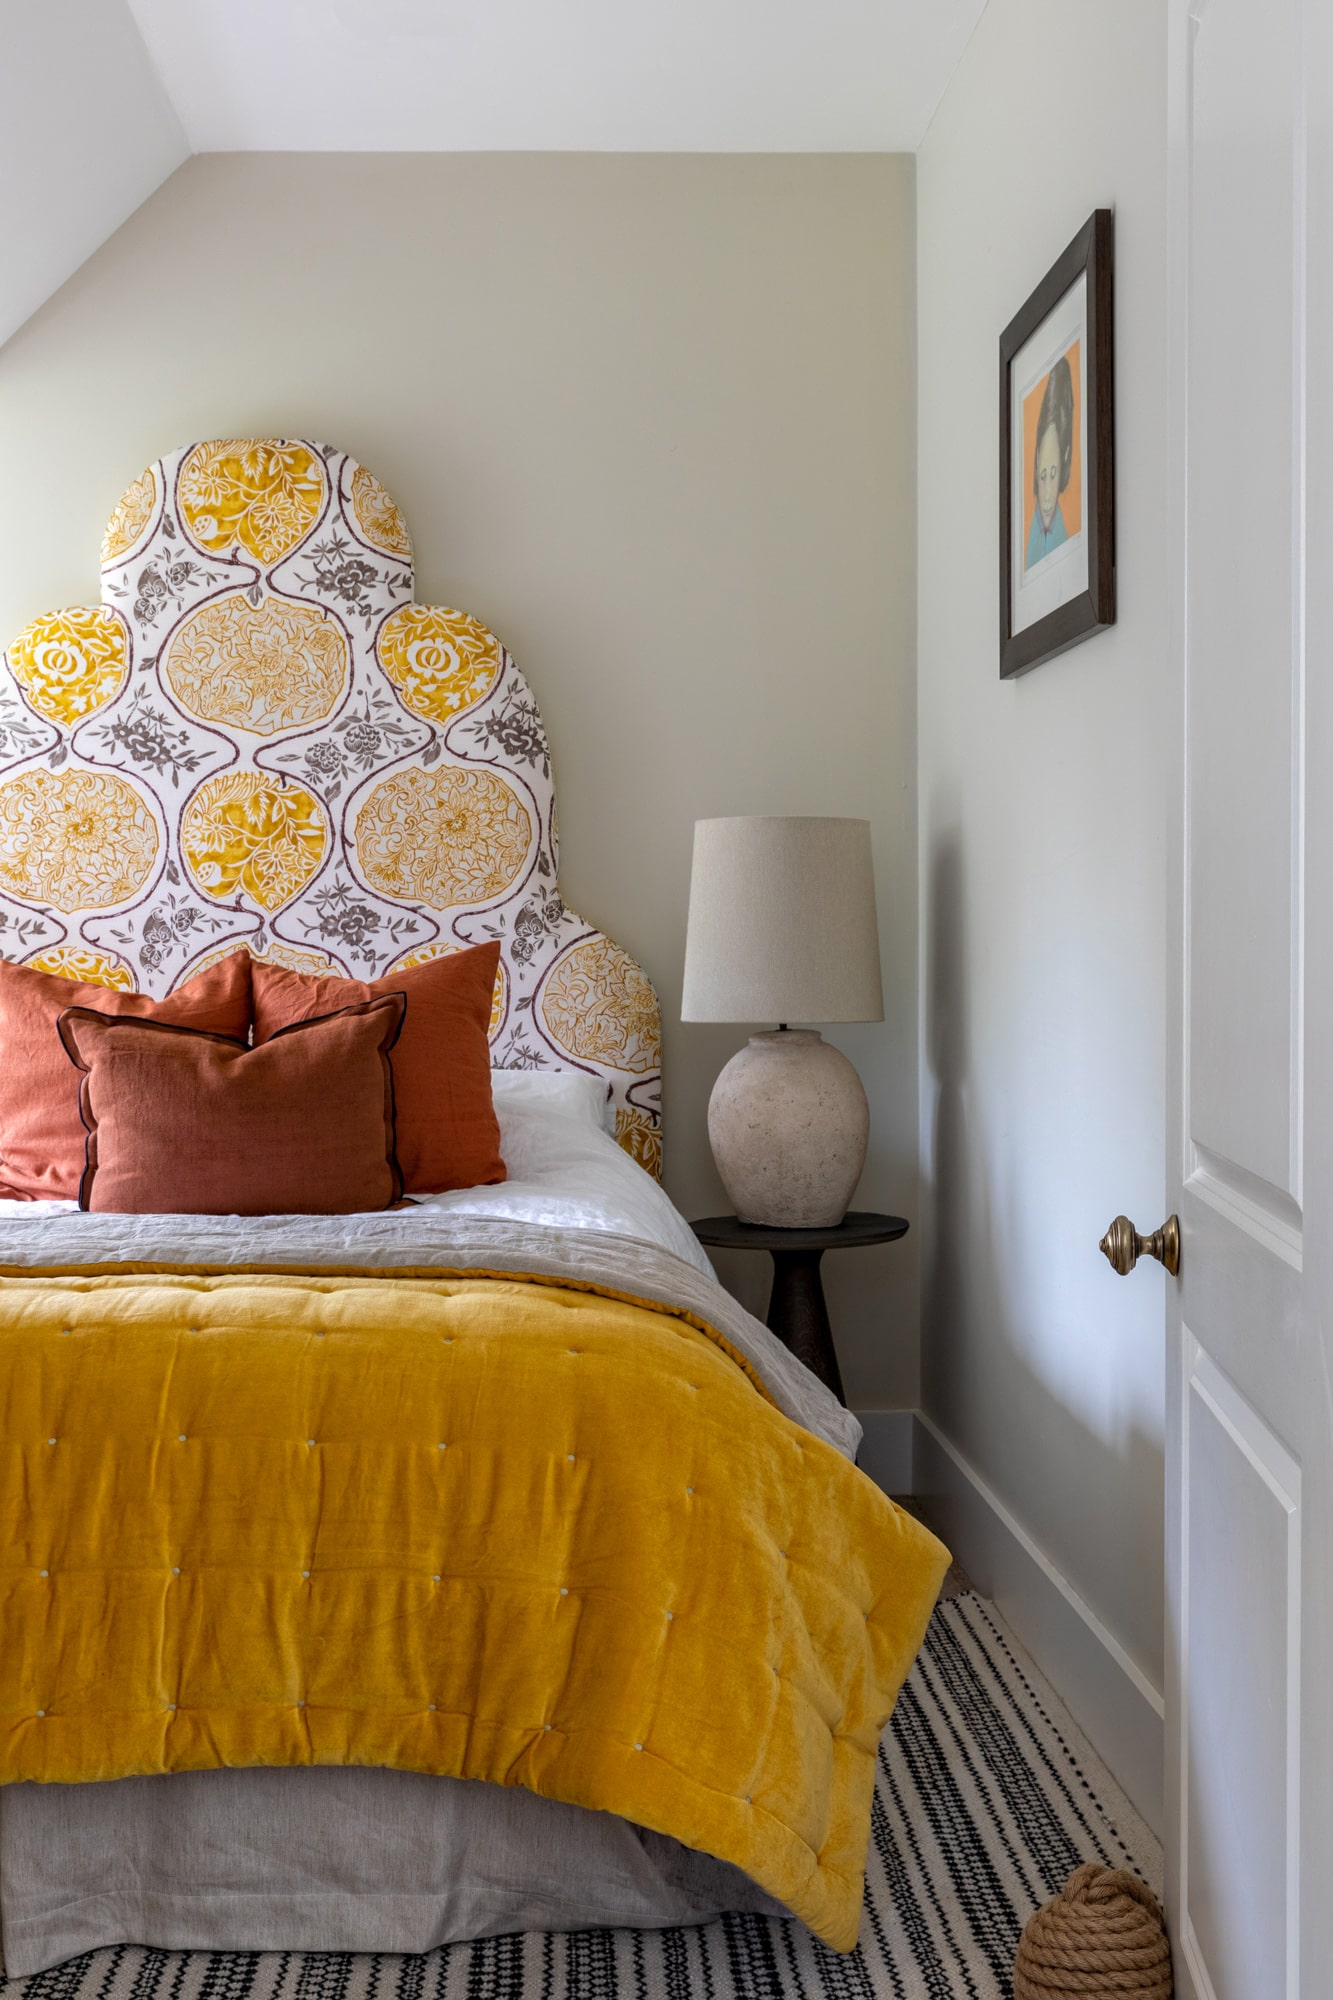 Interior photography: bedroom in yellow and terracotta colors